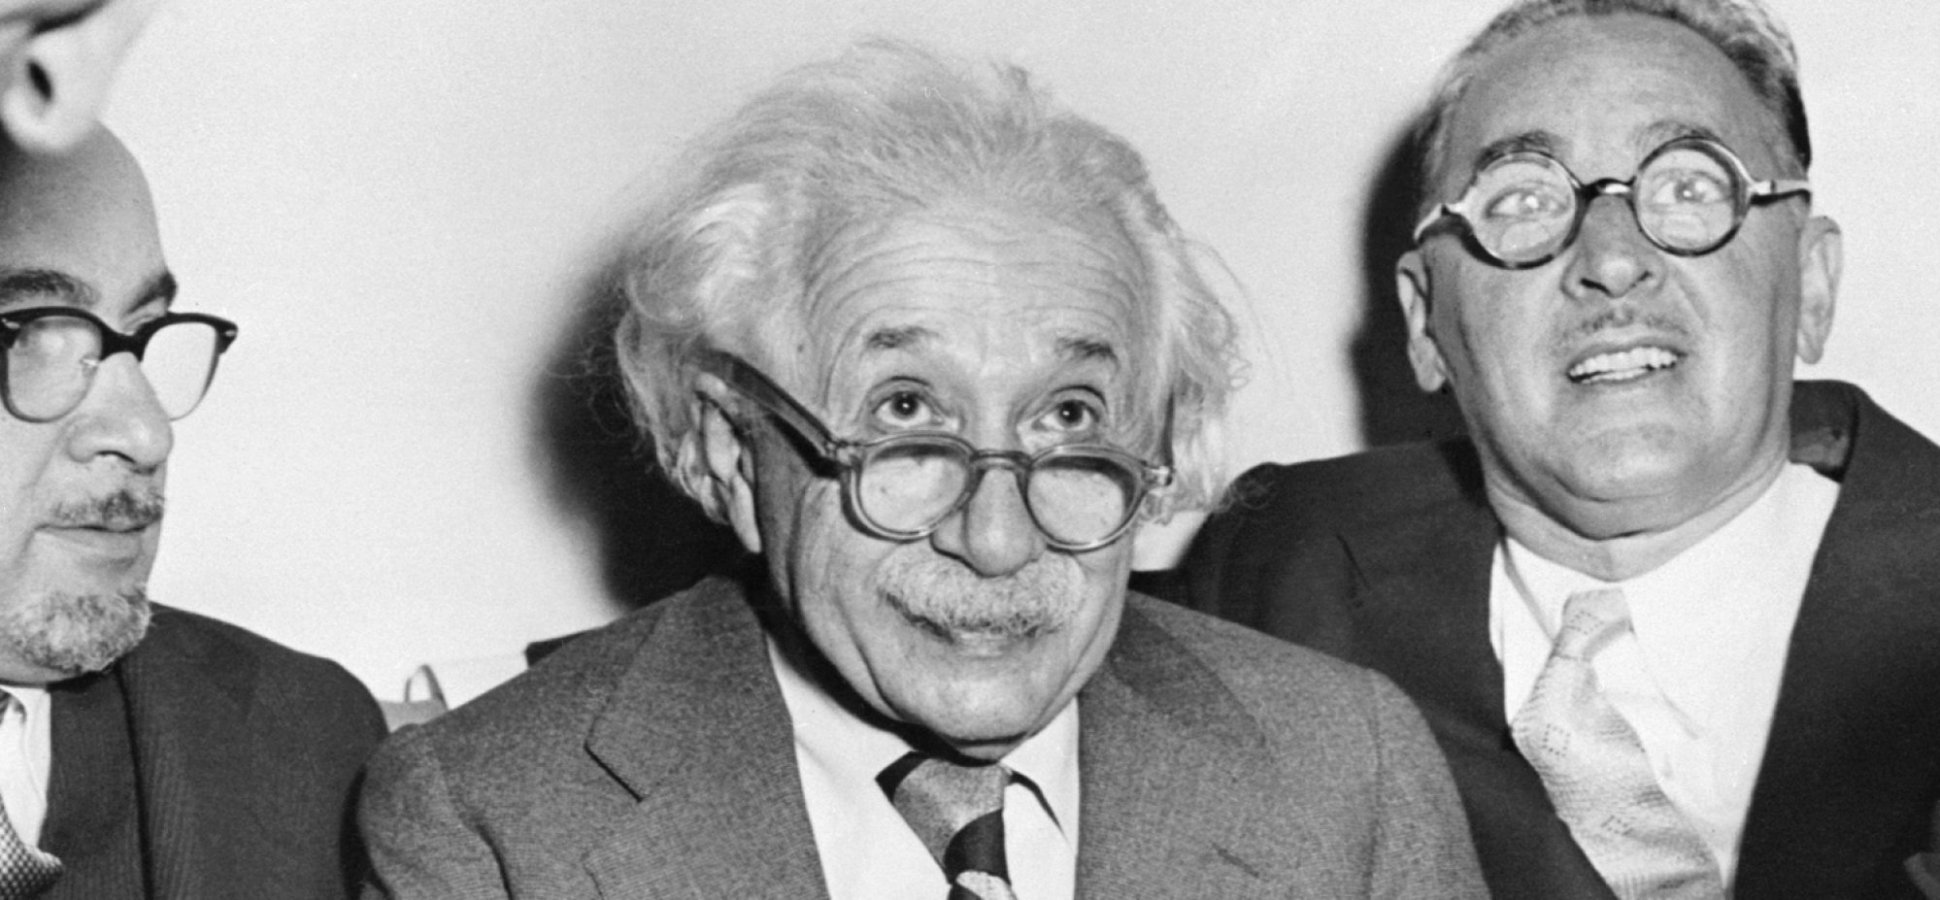 15 Quotes That Will Make You Feel Smarter Immediately